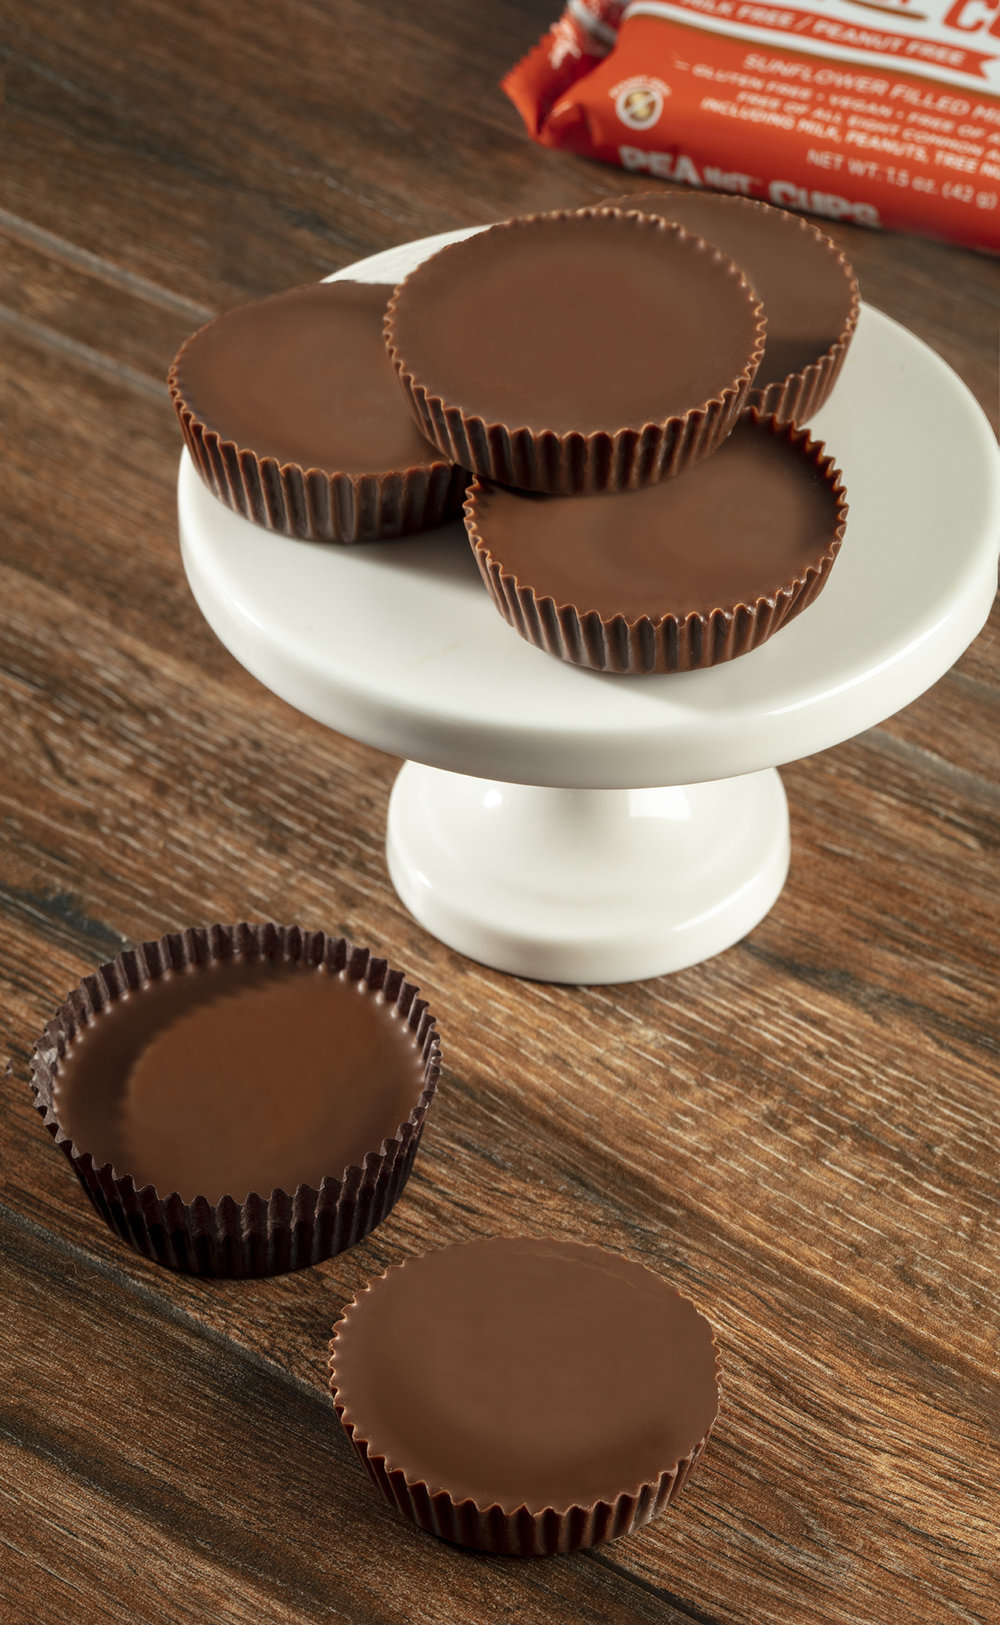 Food Photography - Peanut Butter Cups